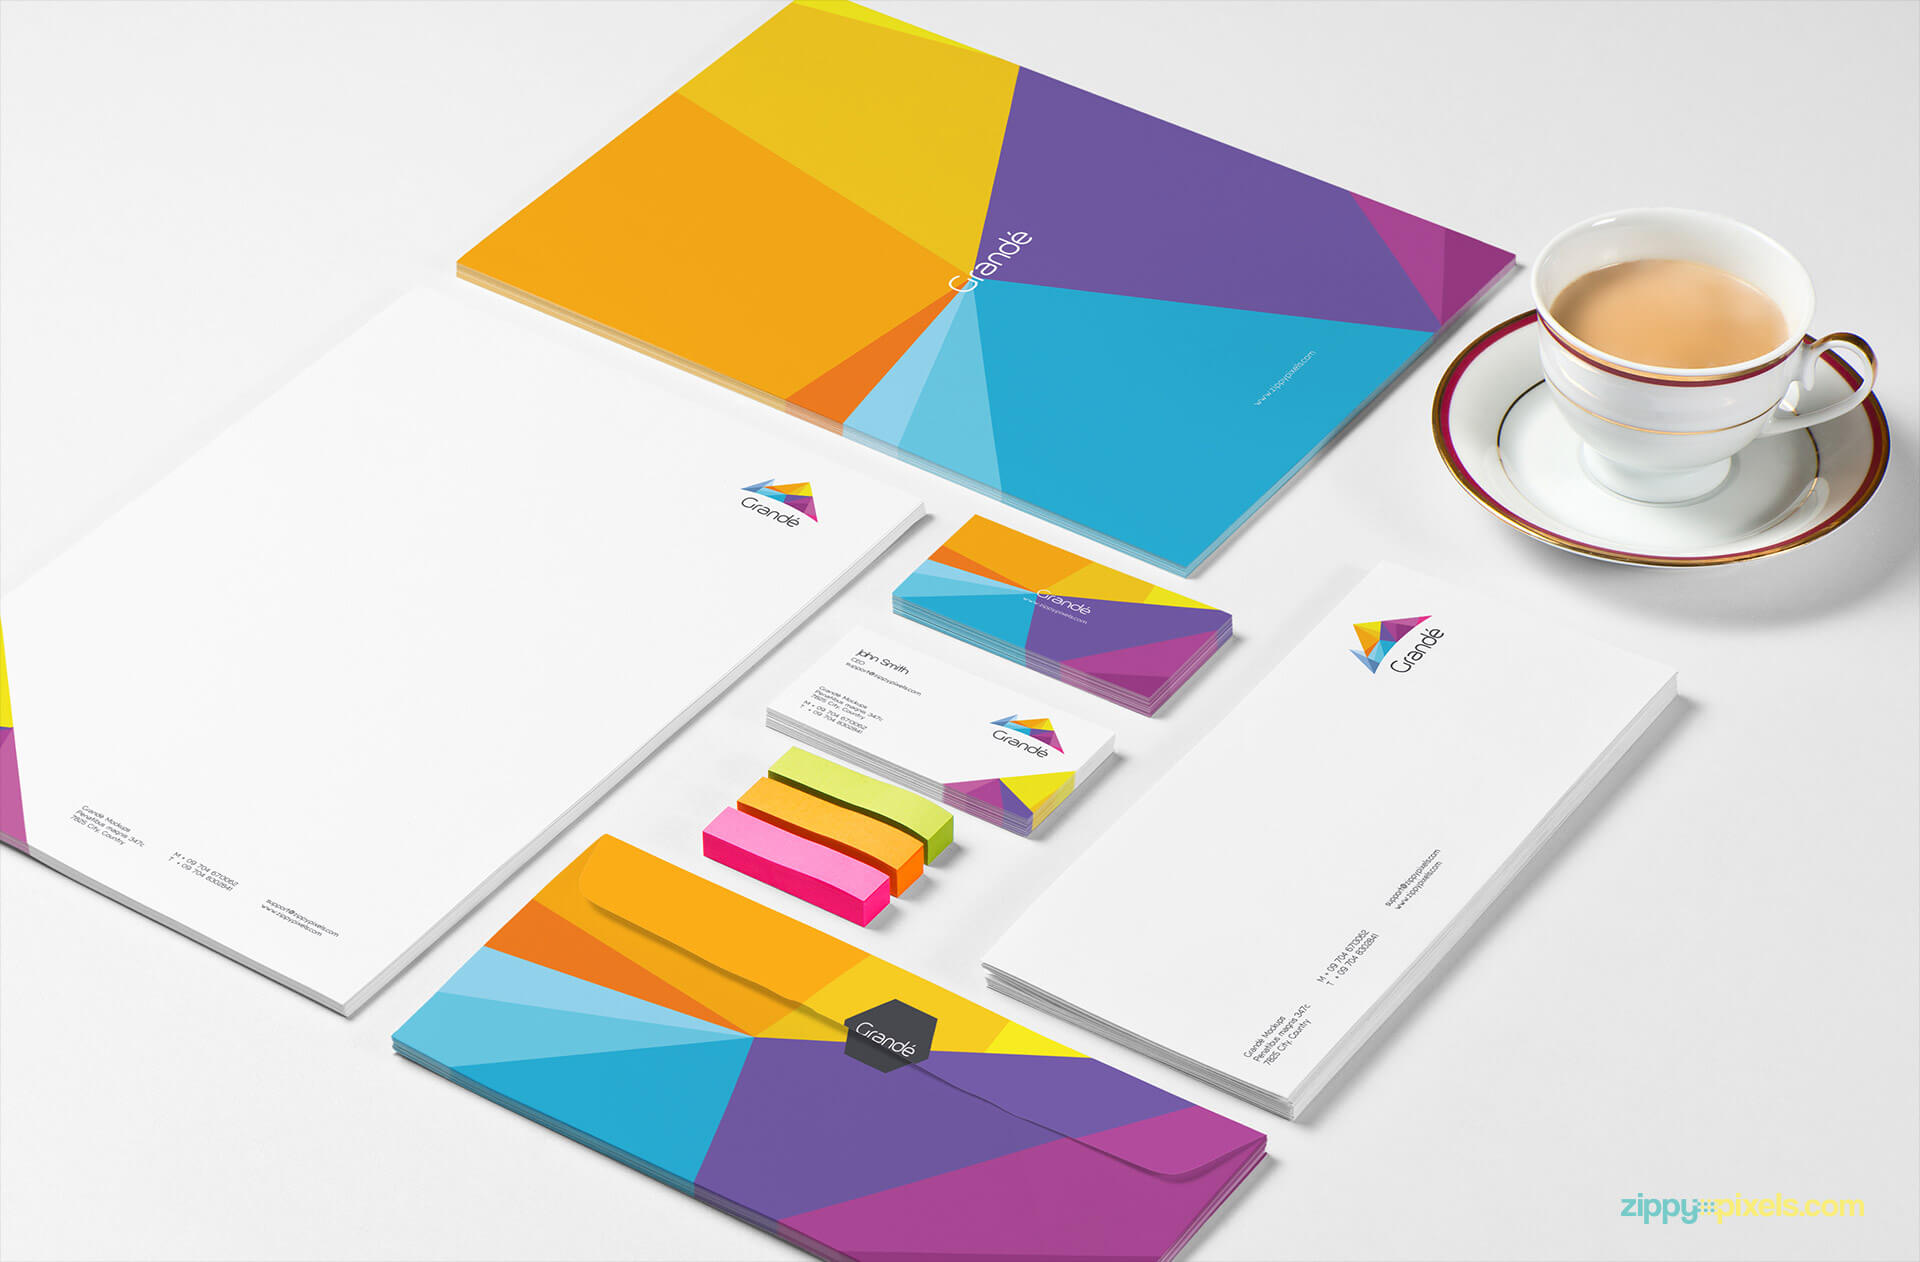 Brand Identity Mockup Set of Stationery; Letterhead, Envelopes, Business Cards